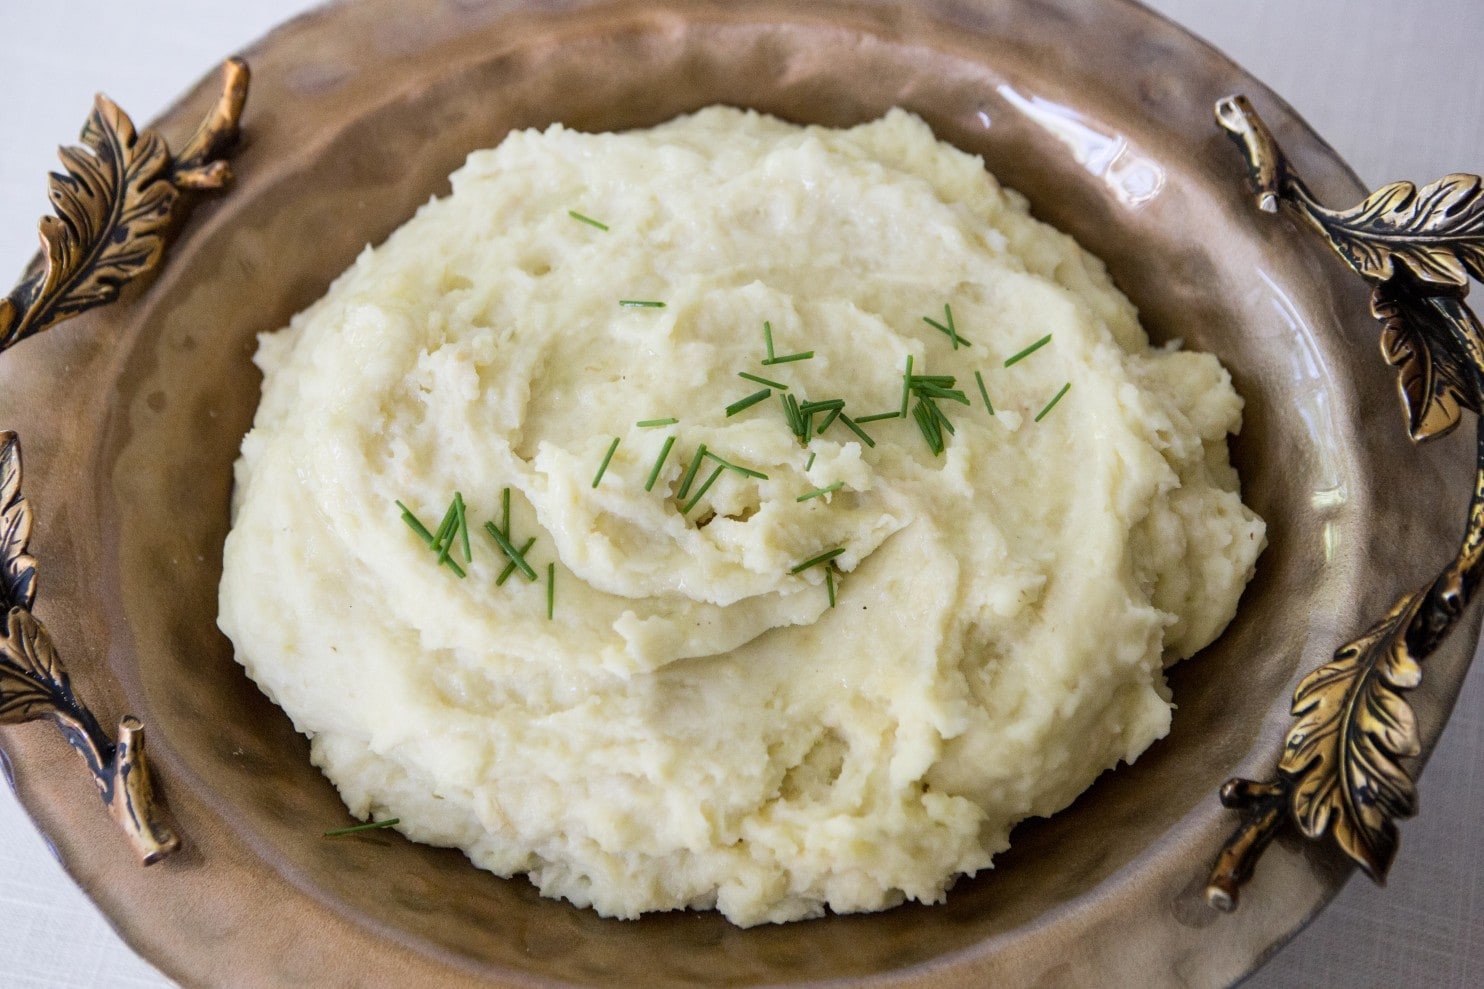 Mashed Potatoes For Thanksgiving  These mashed potatoes are so good they'll be the star of